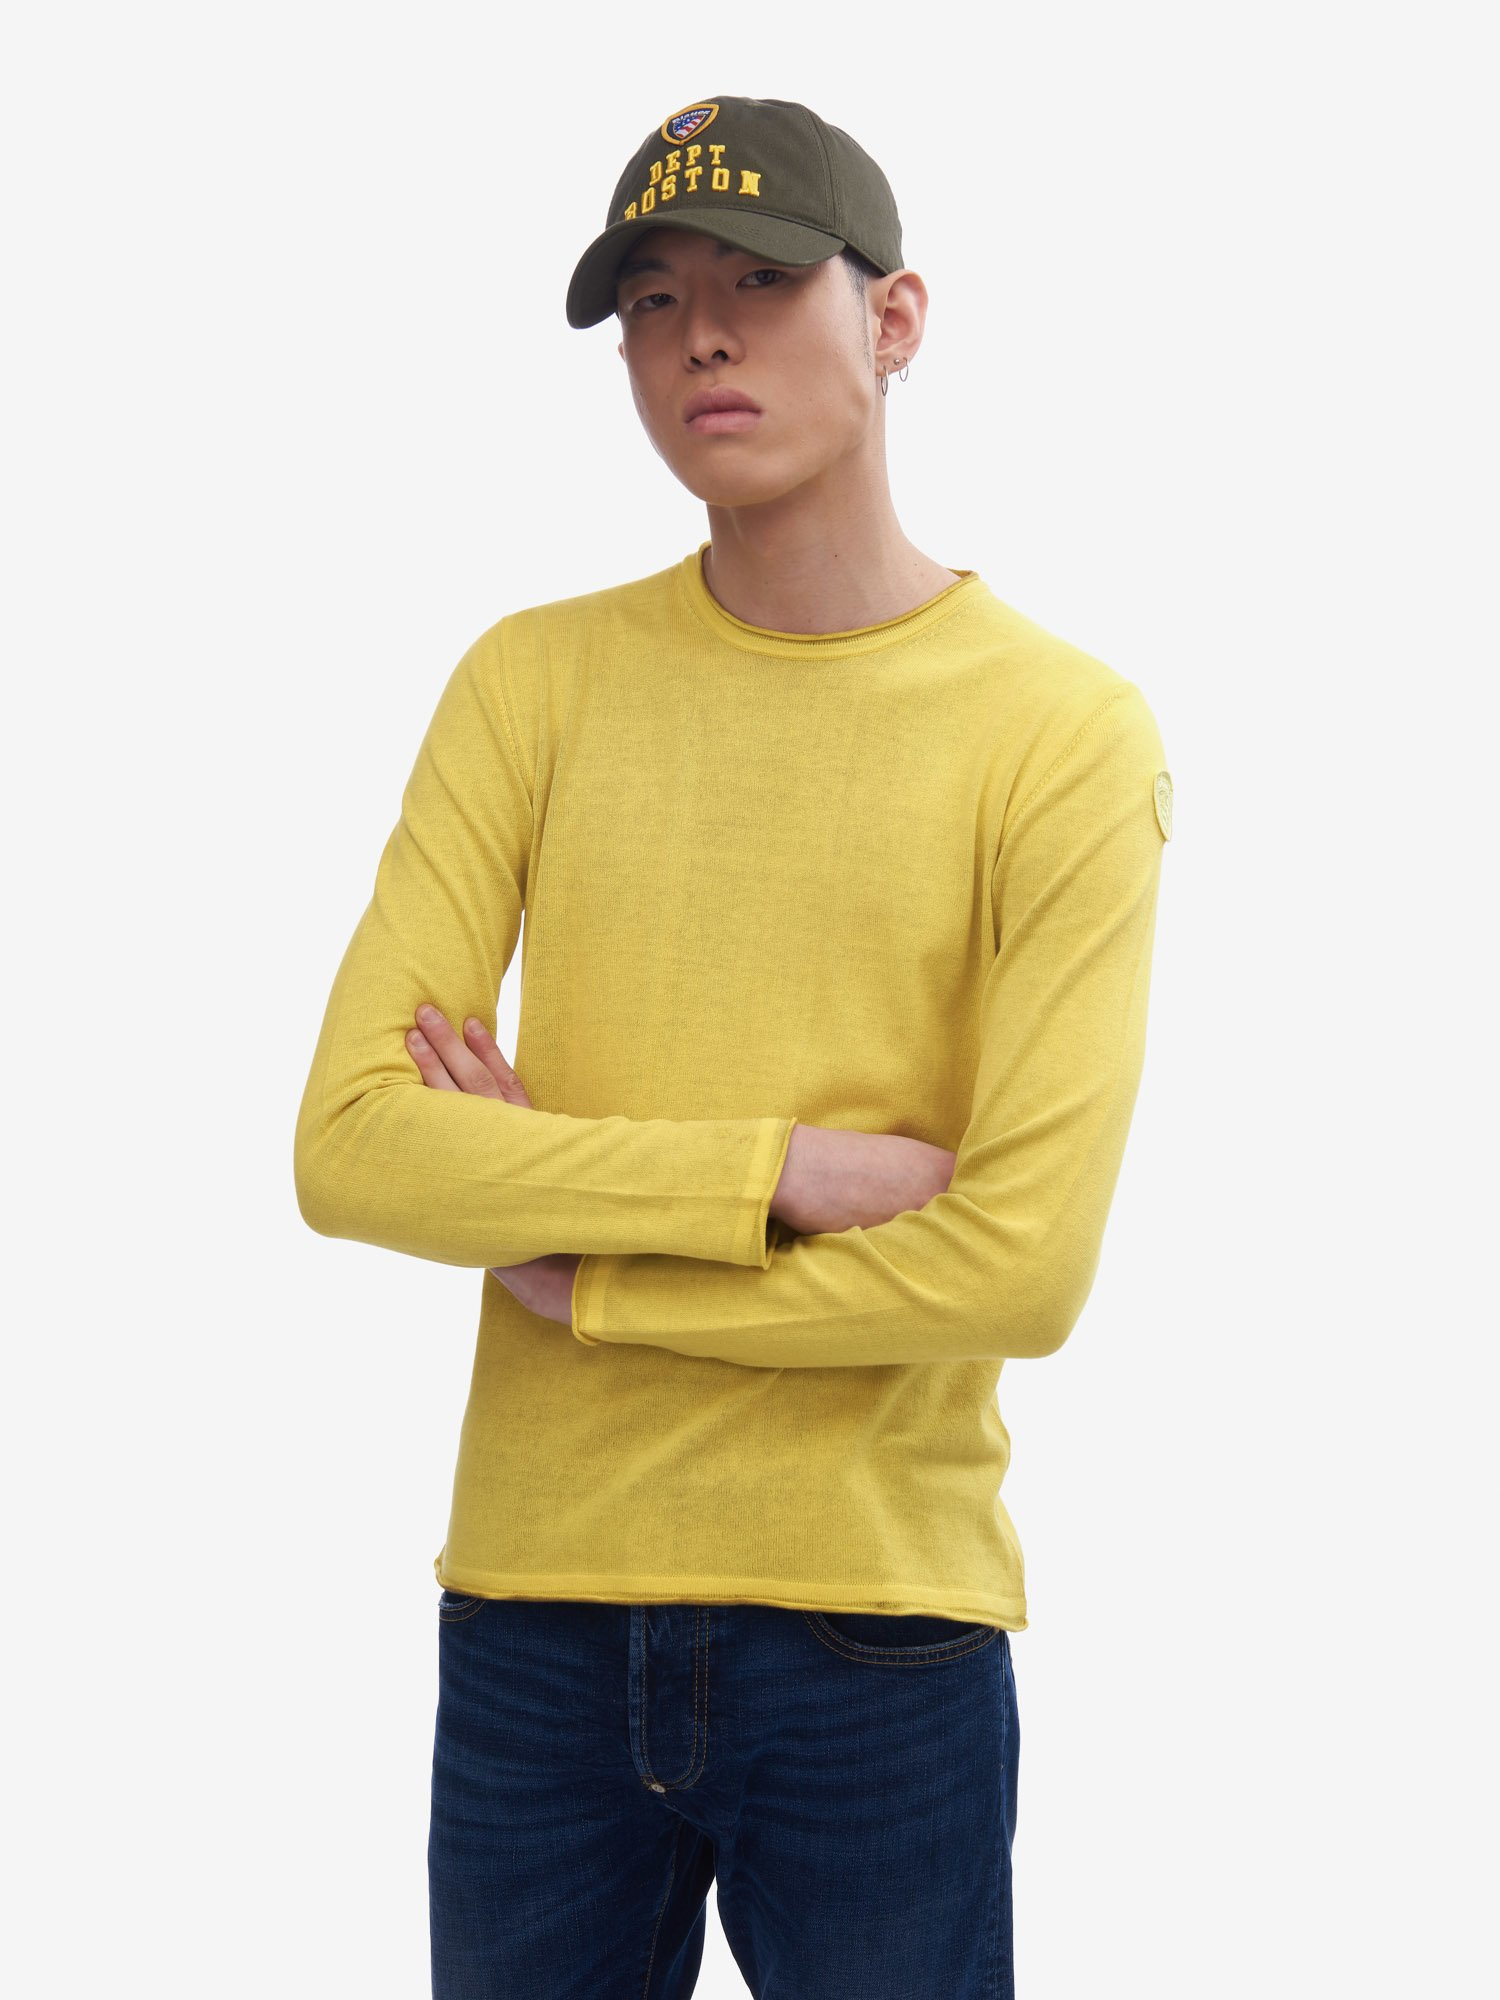 TWO-TONE EFFECT PLAIN KNIT SWEATER - Blauer